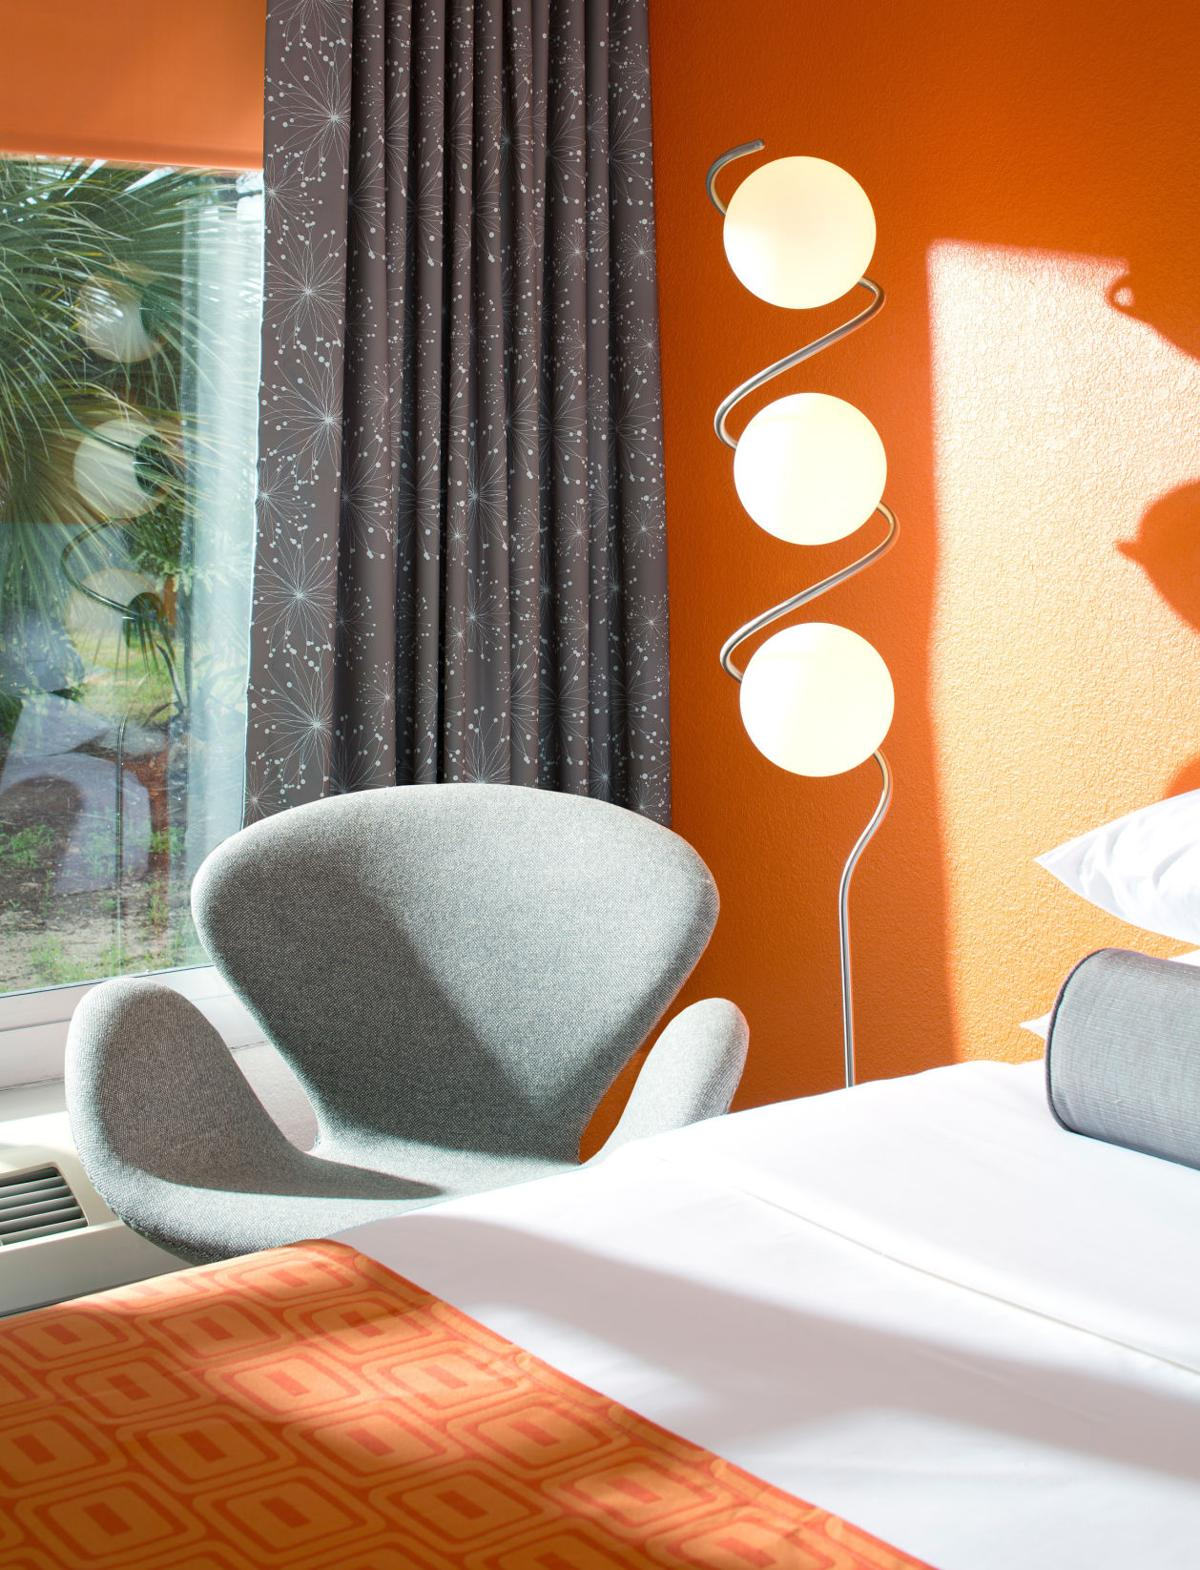 The room's desk areas reflect a contemporary take on the midcentury look at a Howard Johnson hotel in Orlando, FL.